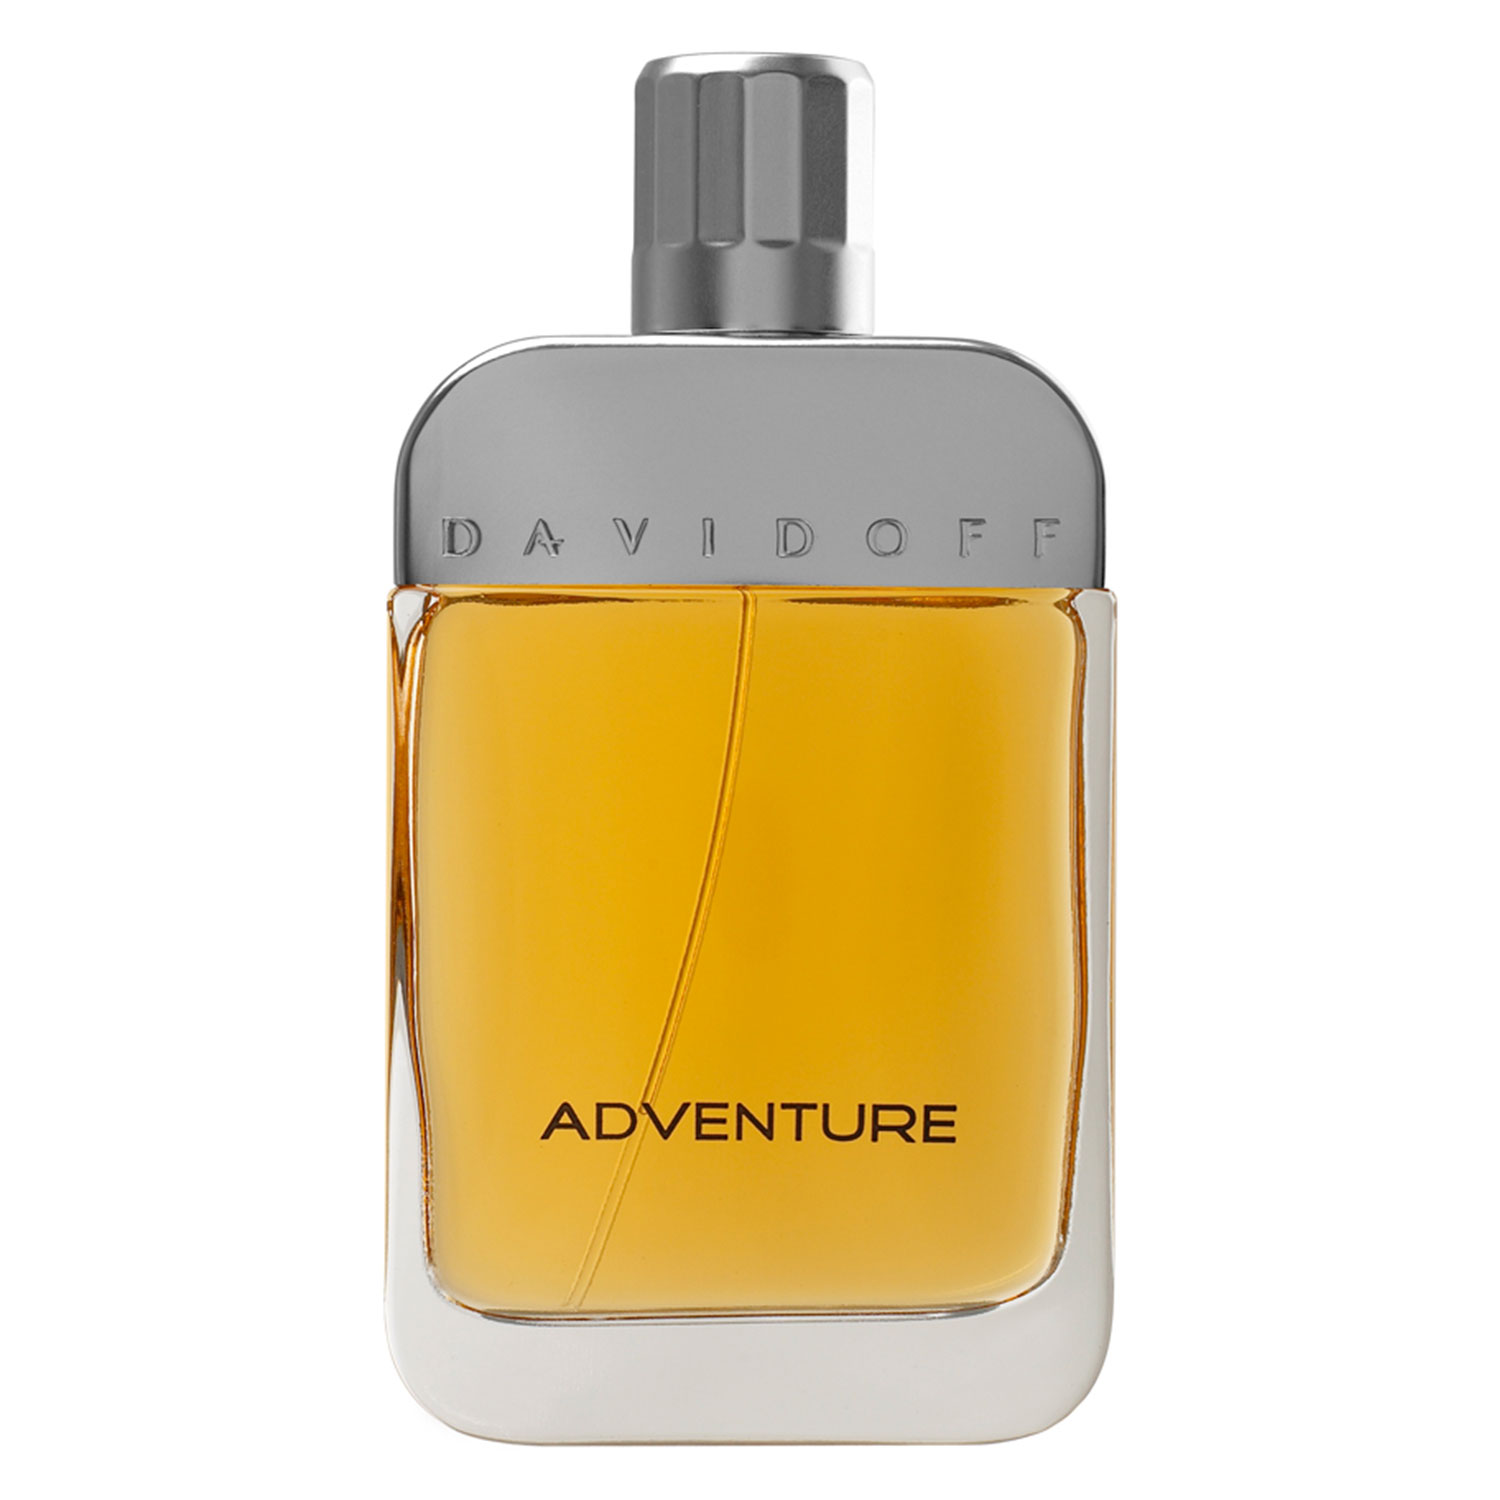 Adventure - Eau de Toilette